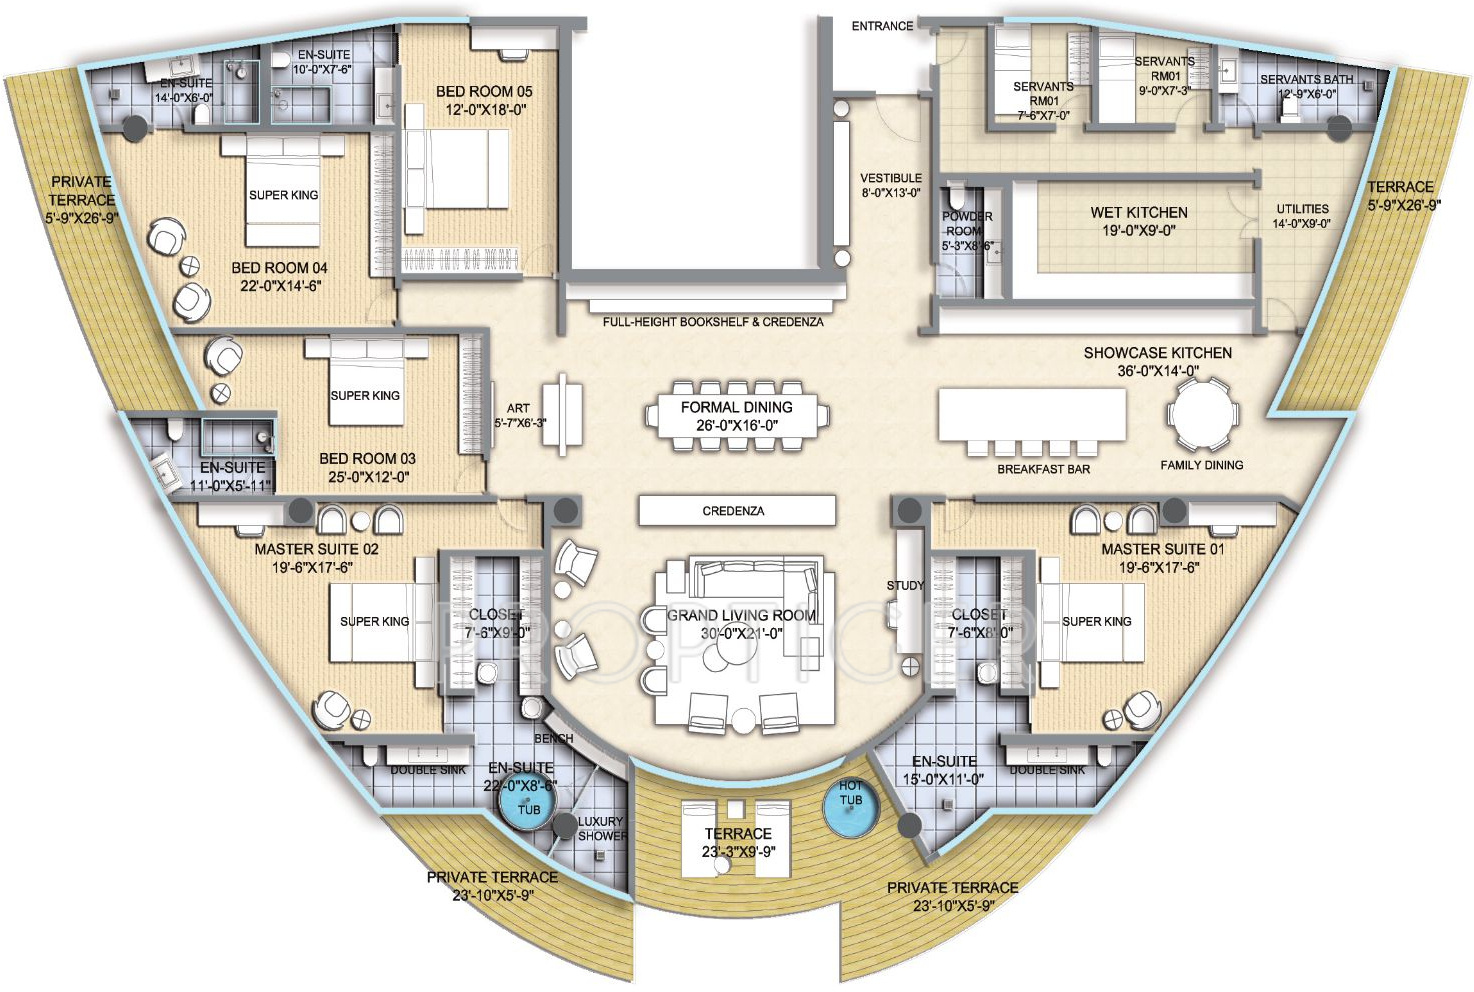 5 000 square foot house plans house design plans for Floor plans for 5000 sq ft homes